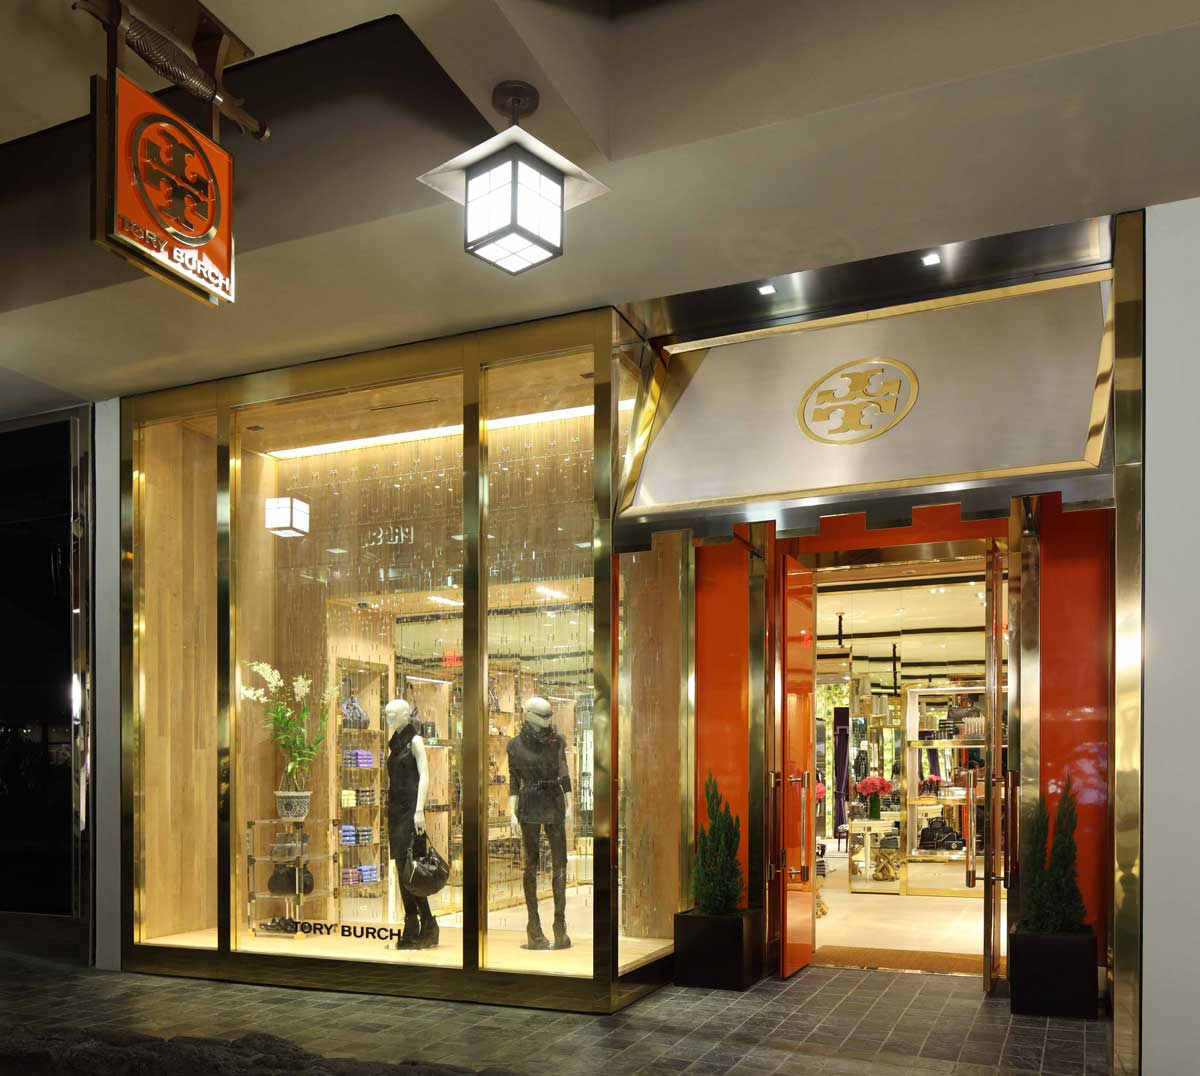 Tory Burch store exterior